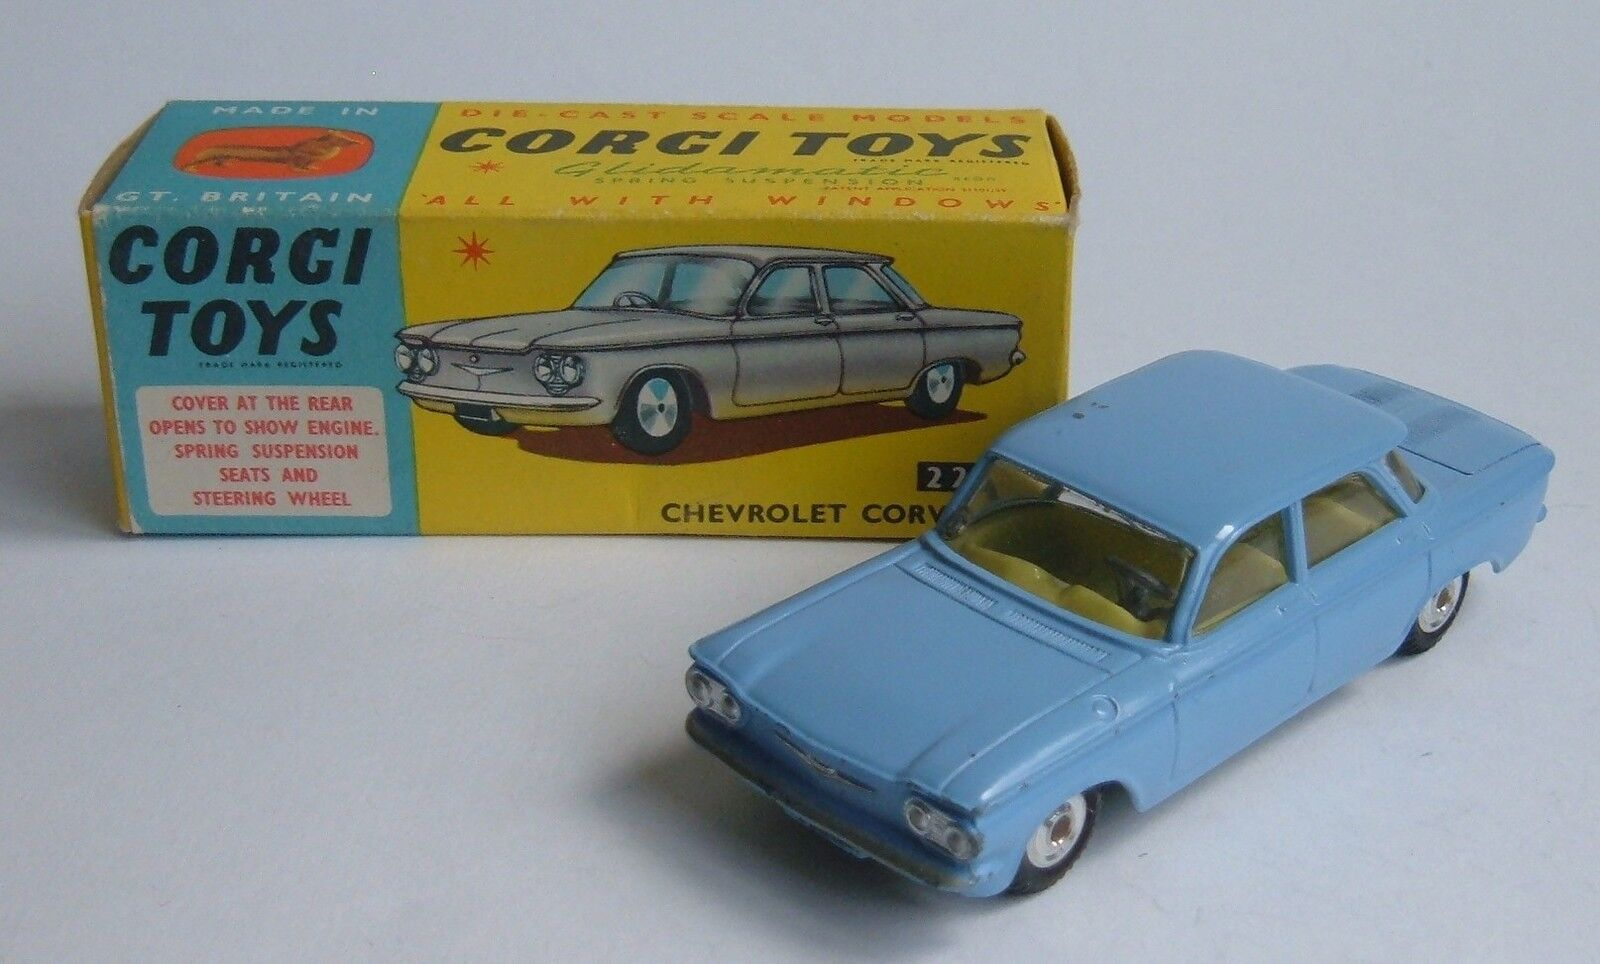 Corgi Toys No. 229, Chevrolet Corvair, - Superb